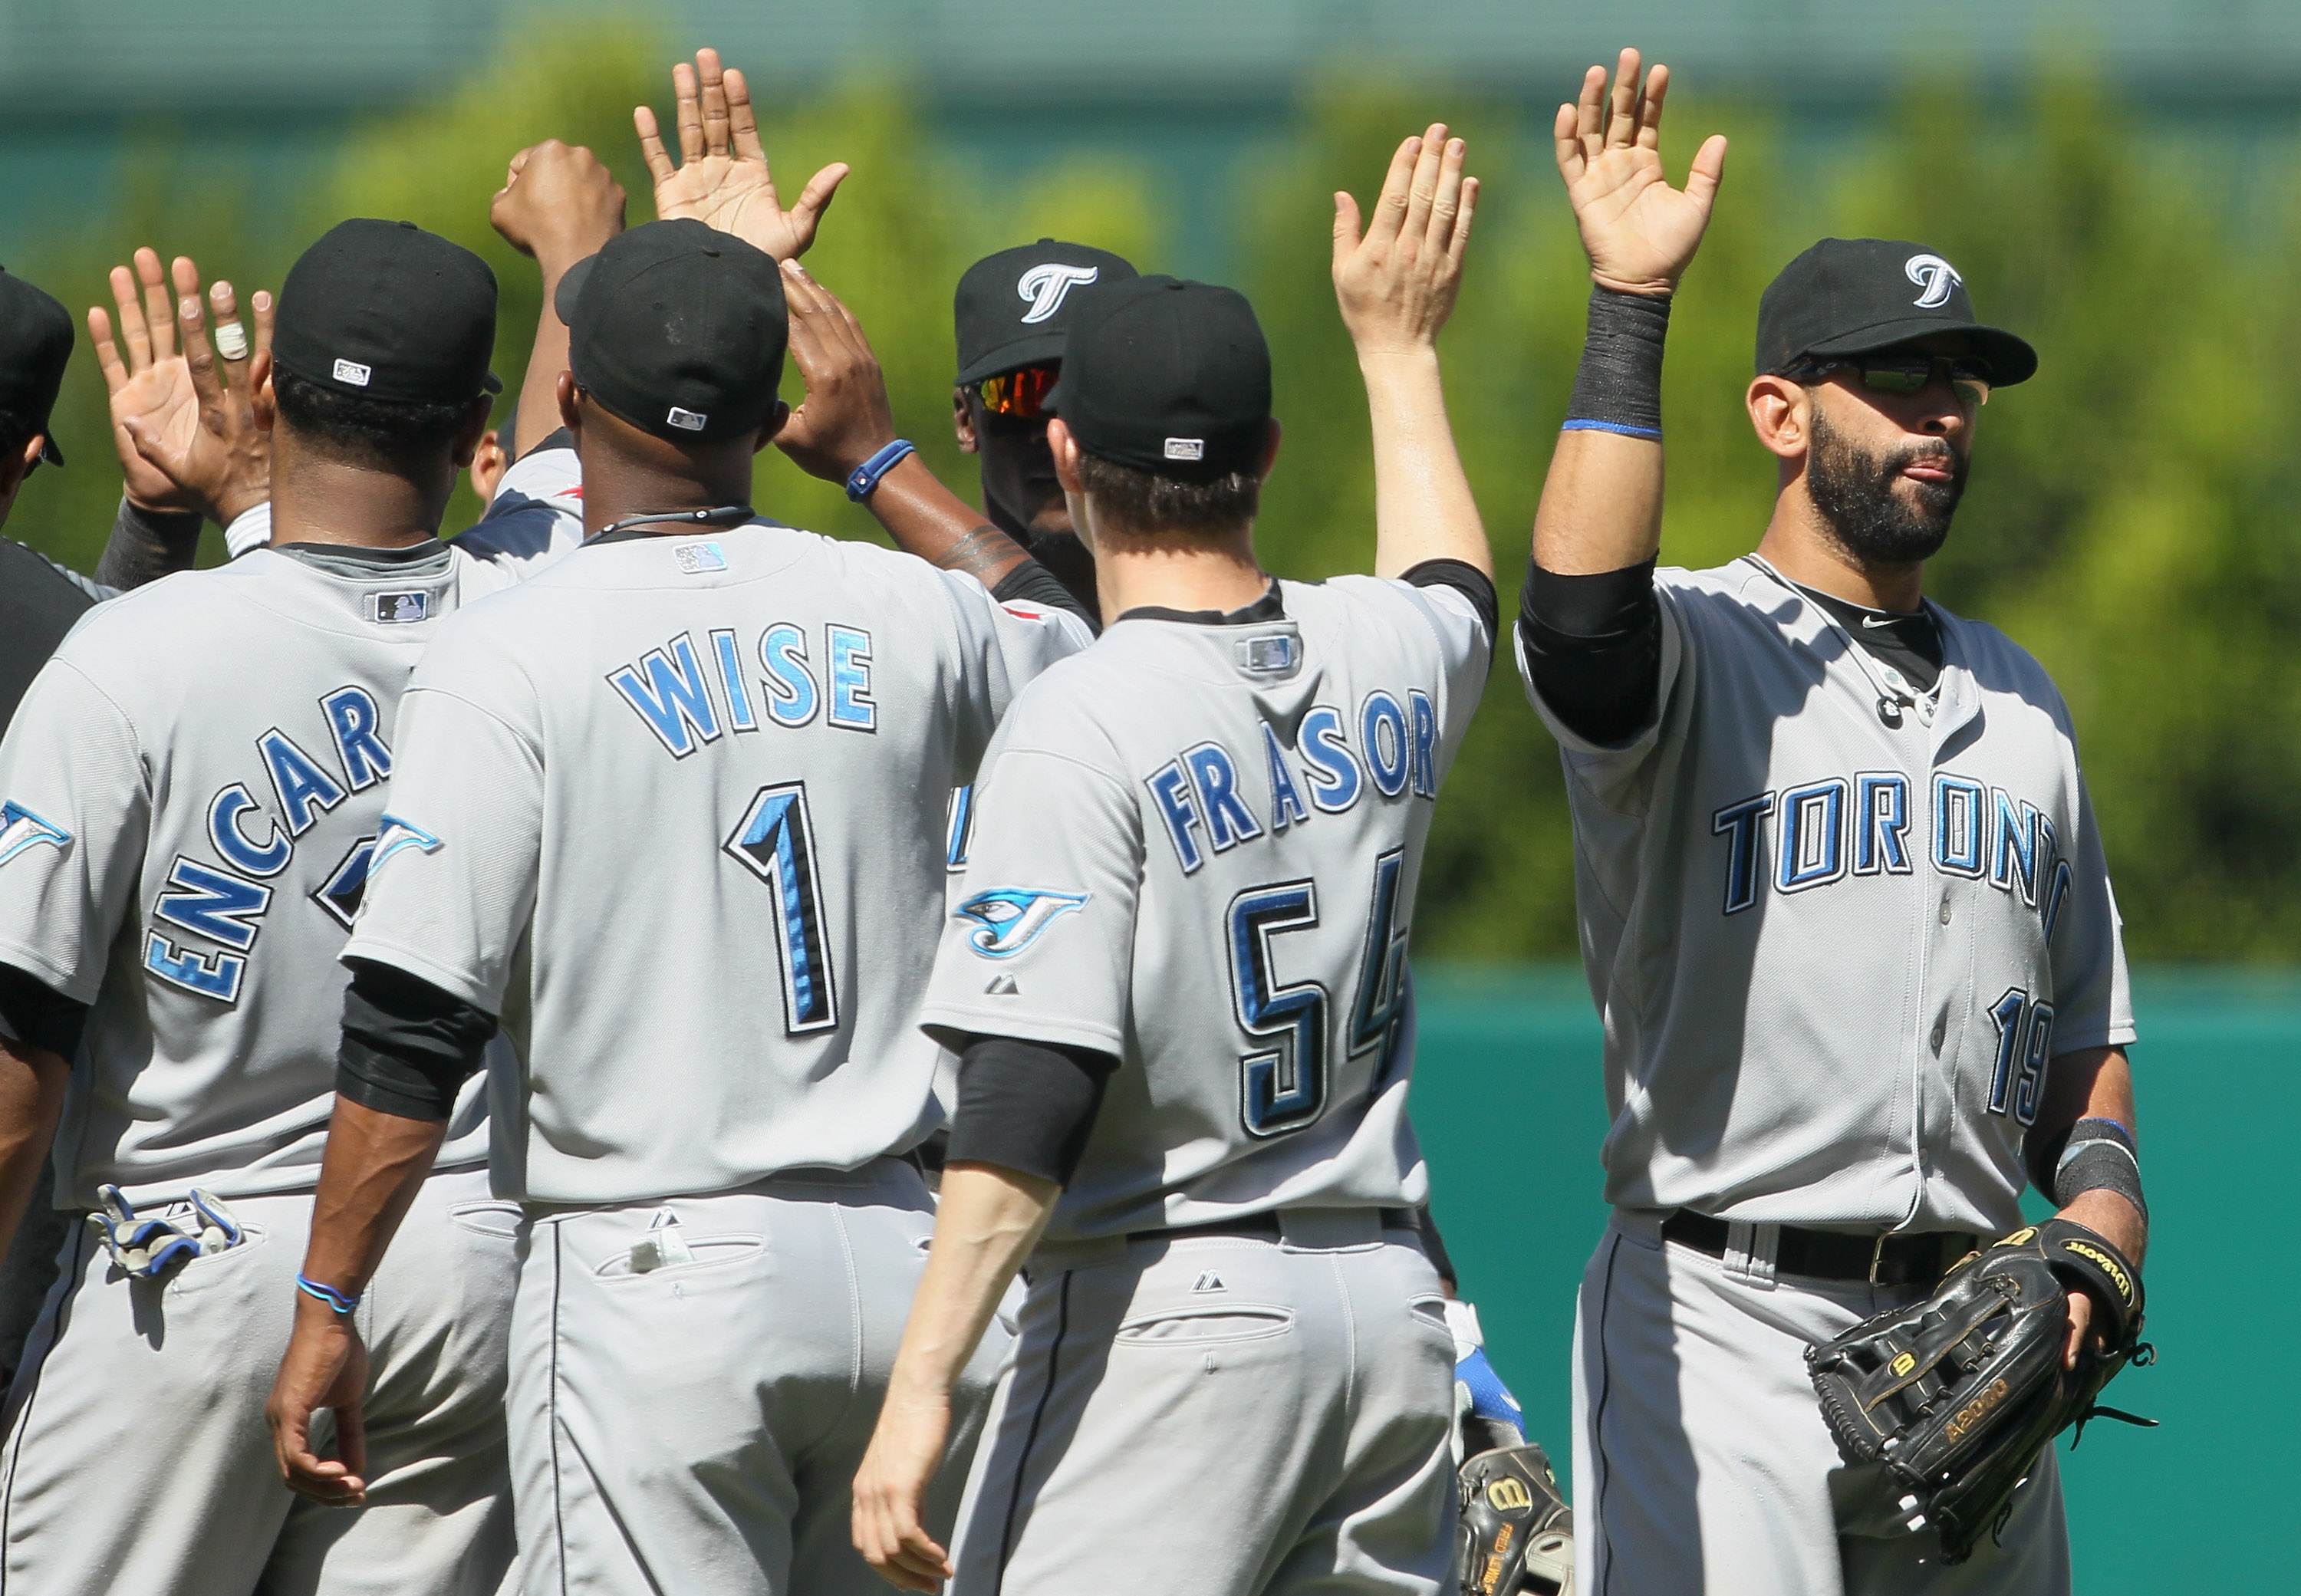 Jraser will high five his teammates in Toronto again in 2011.